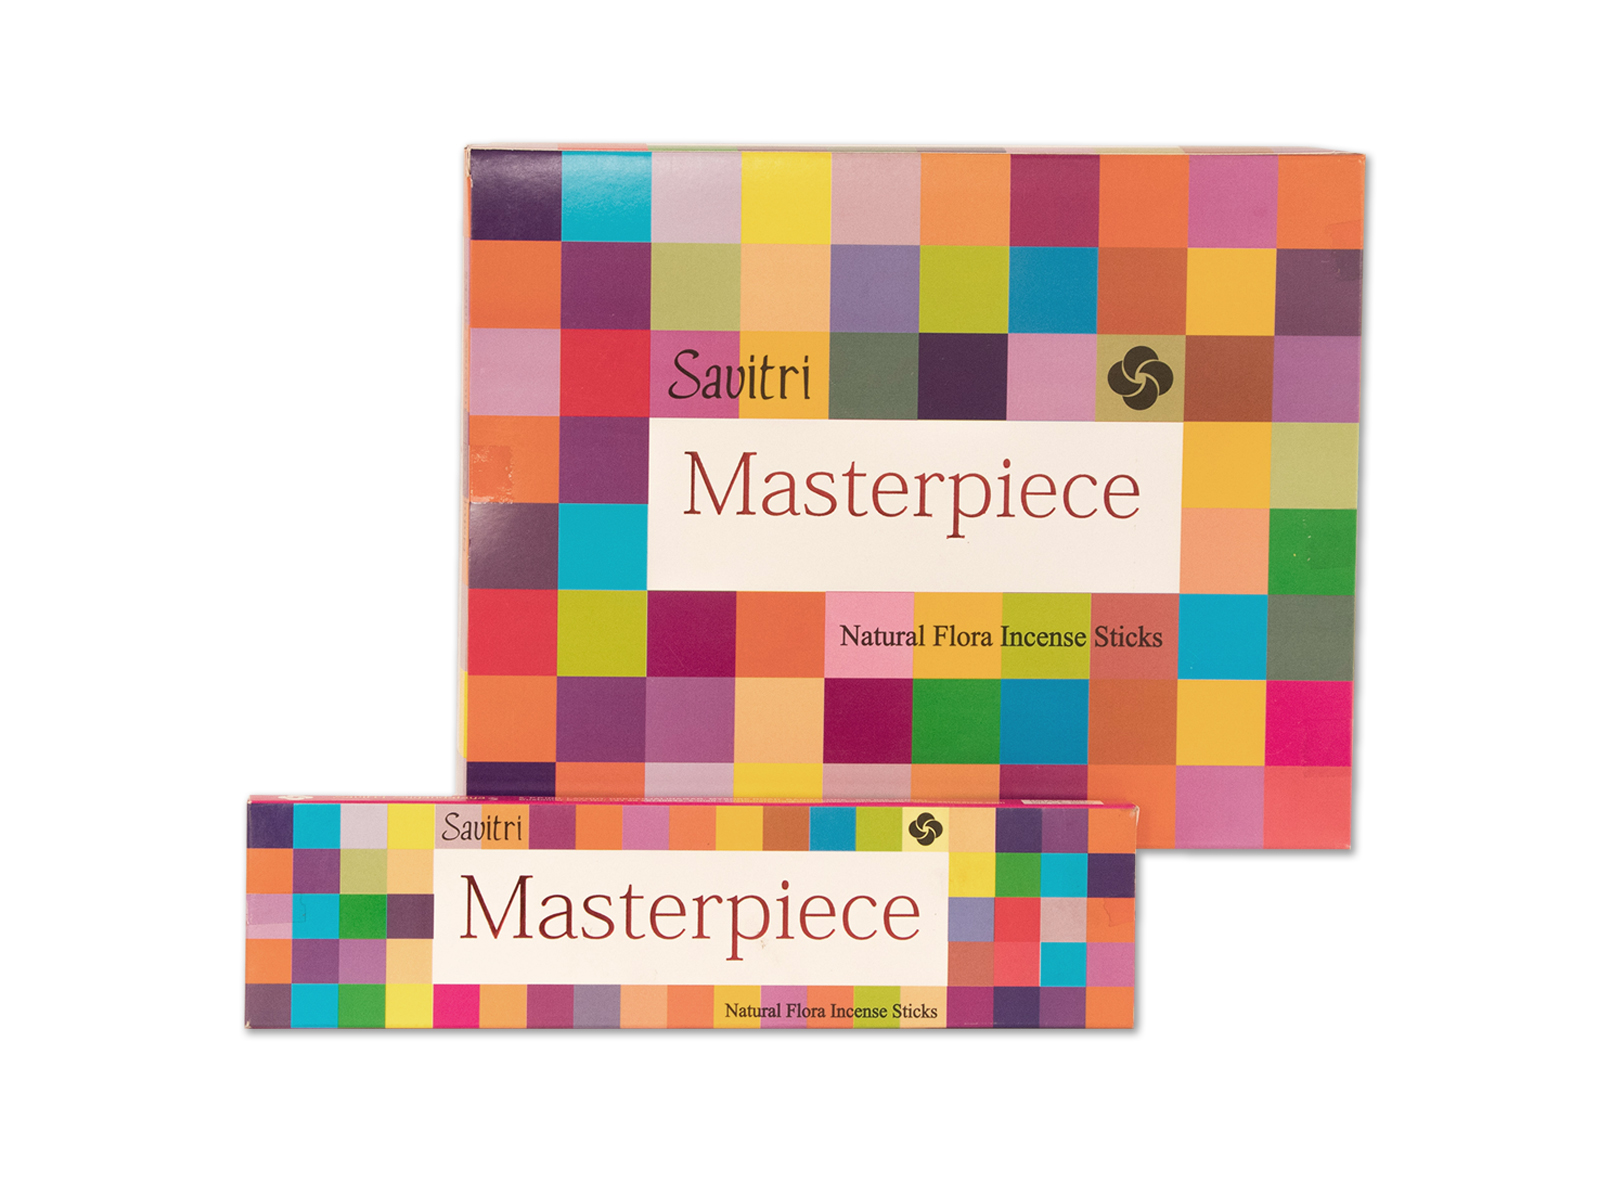 Masterpiece_premium Box